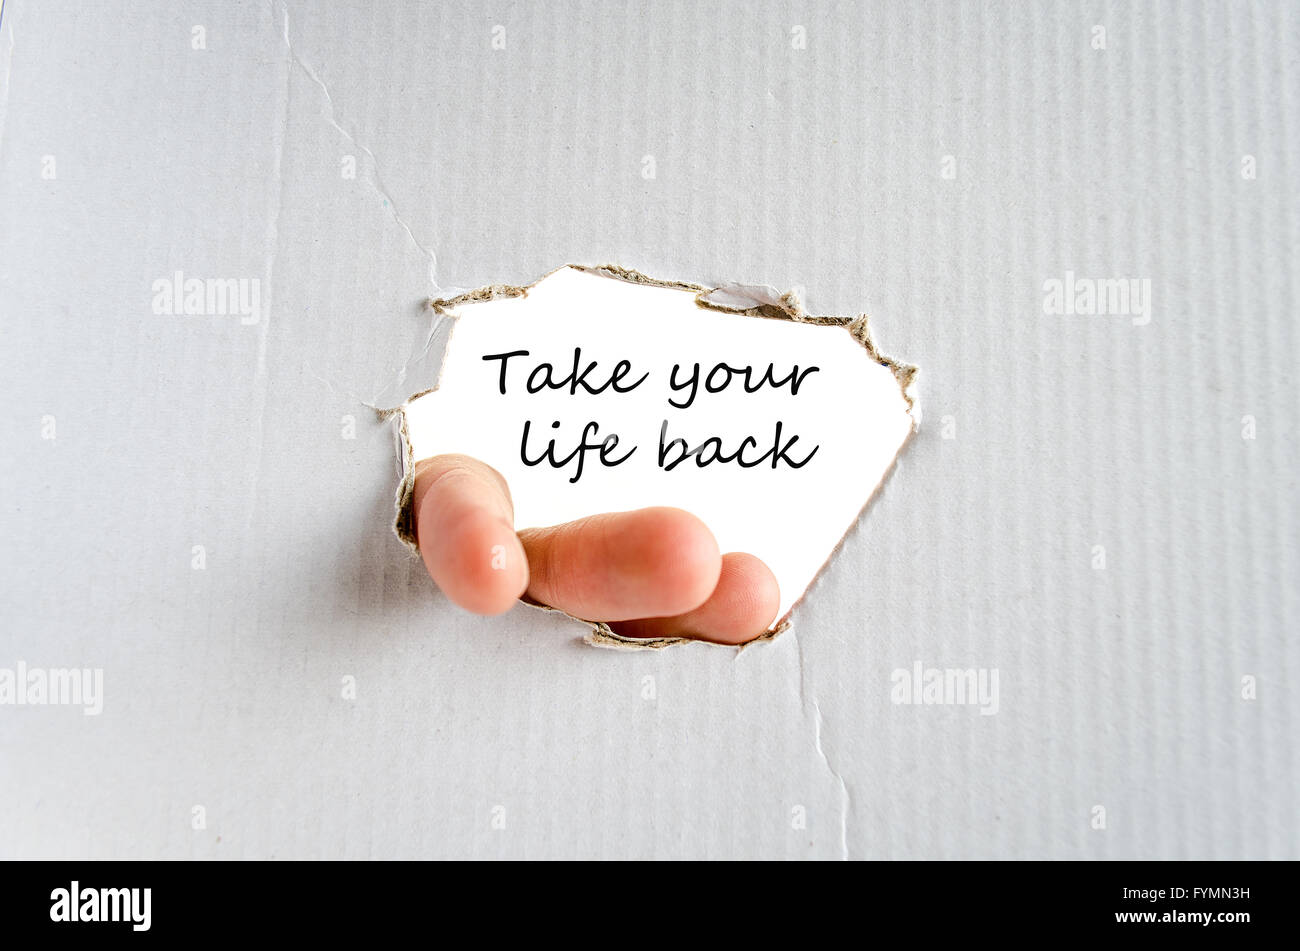 Take your life back text concept - Stock Image